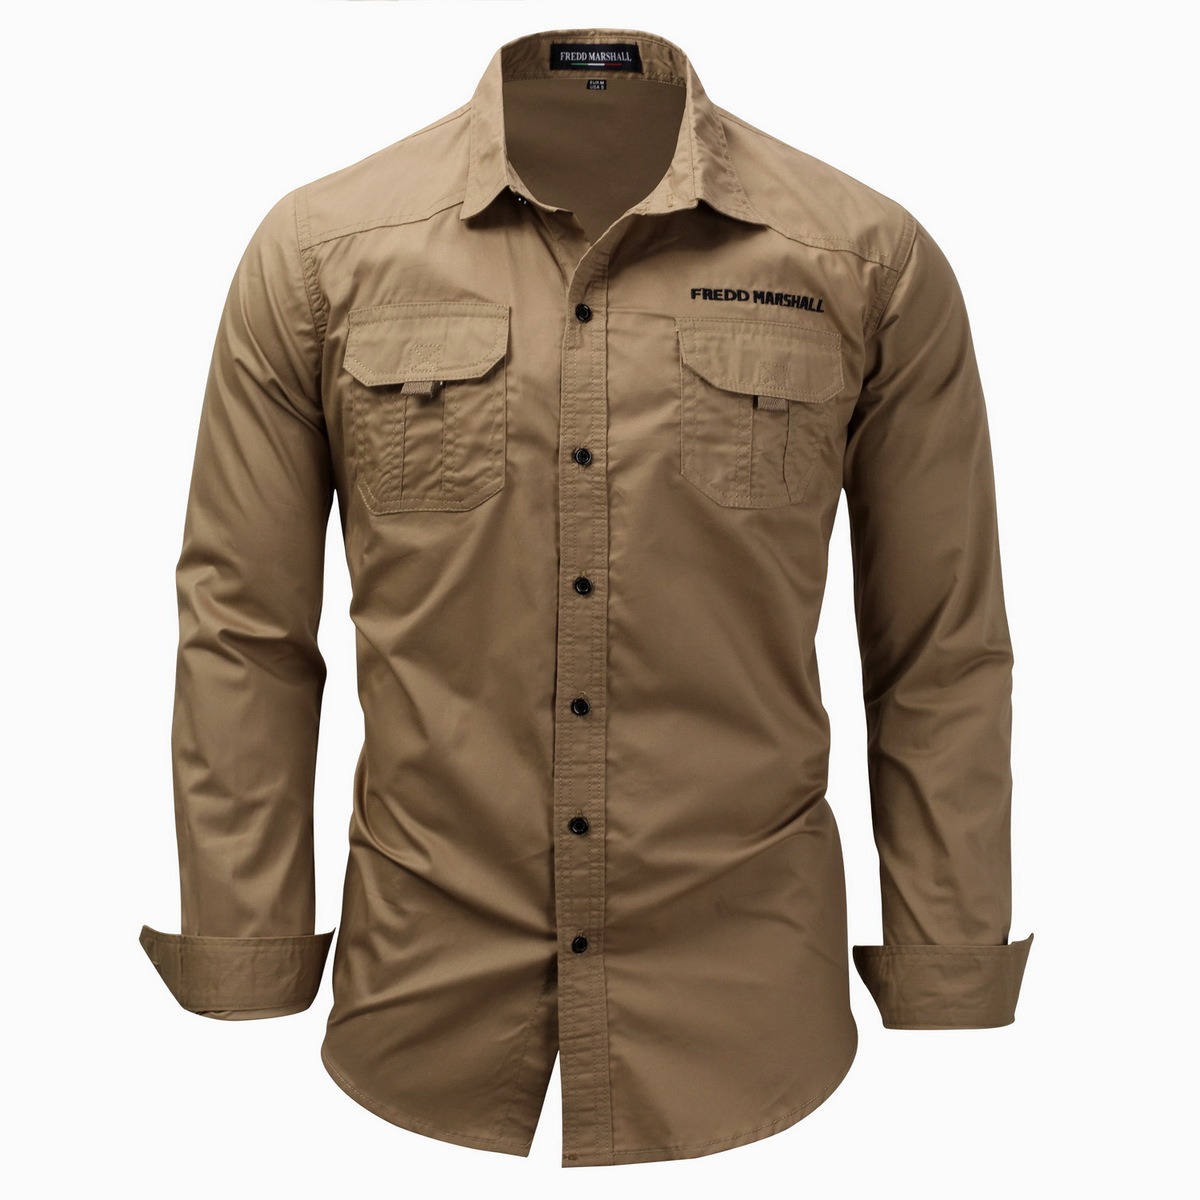 Male Outdoor Sports Climbing Military Training Tactical Shirts Large Size Men's Lapel Long Sleeve Cardigan Cotton Shirt Tops